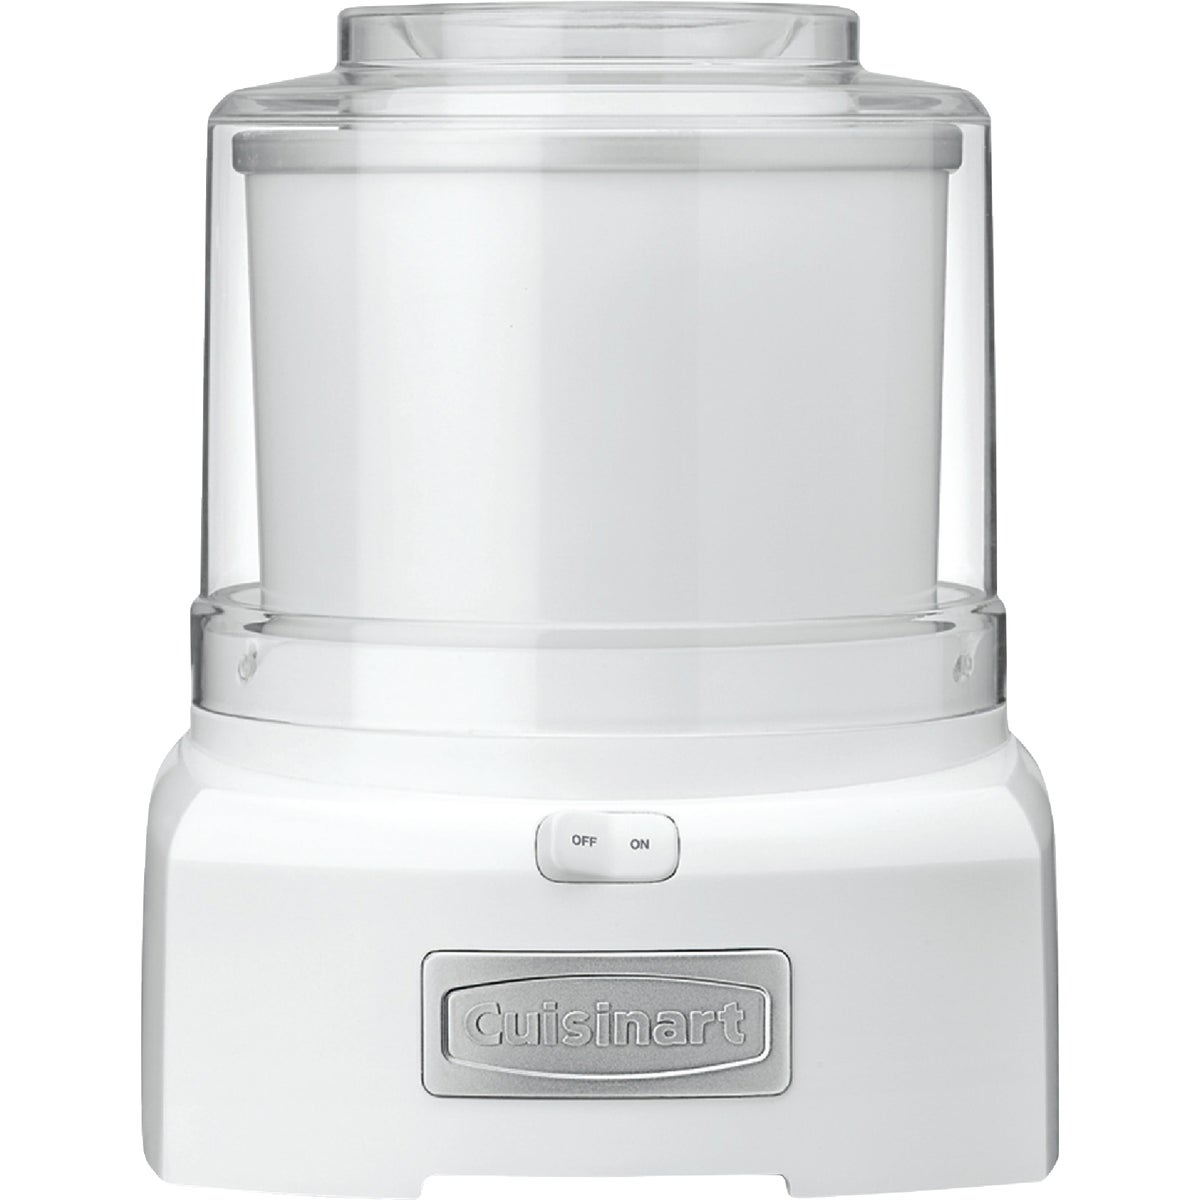 1-1/2QT ICE CREAM MAKER - ICE-21 by Cuisinart